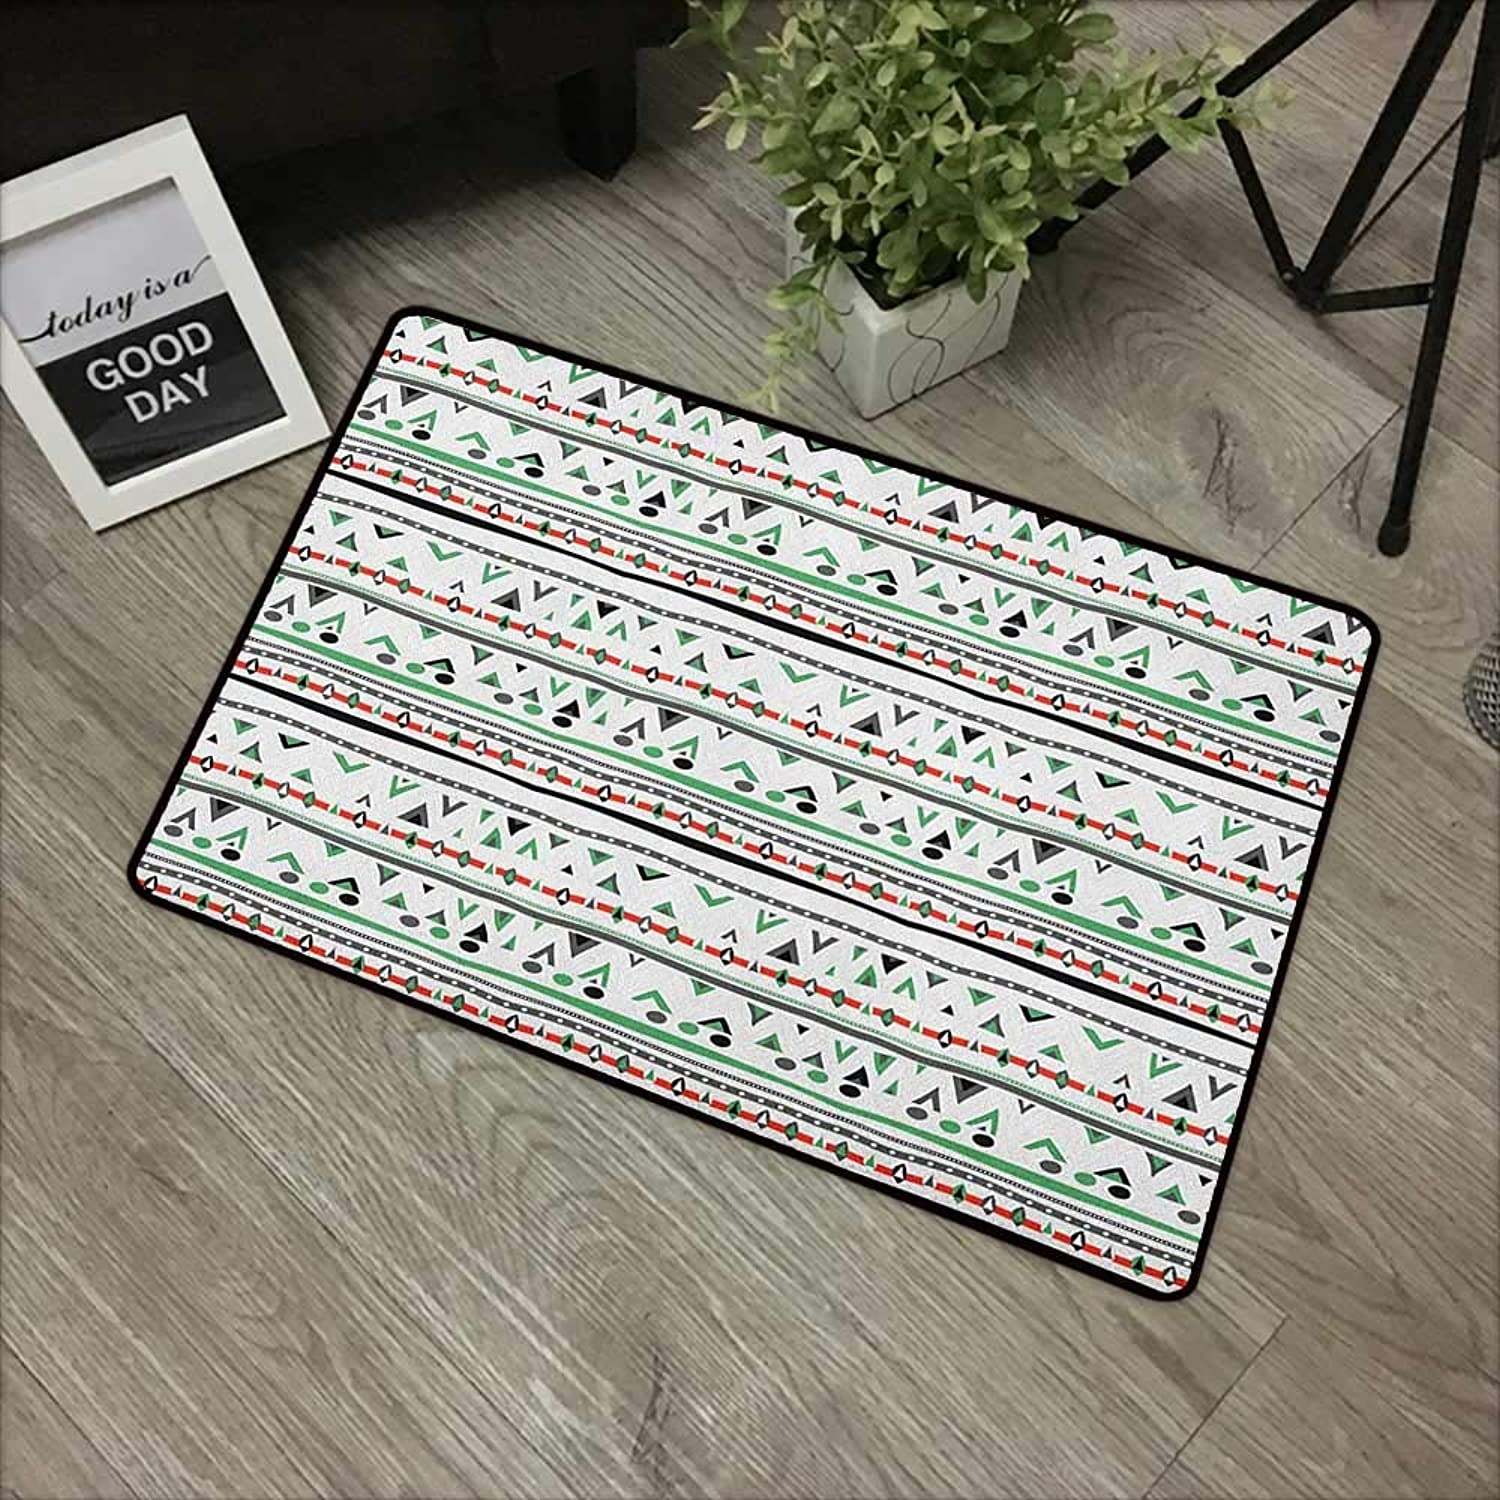 Pool Anti-Slip Door mat W35 x L59 INCH Tribal,Native American Style Traditional Aztec Pattern Old Fashioned Hippie Boho Influences, Multicolor with Non-Slip Backing Door Mat Carpet